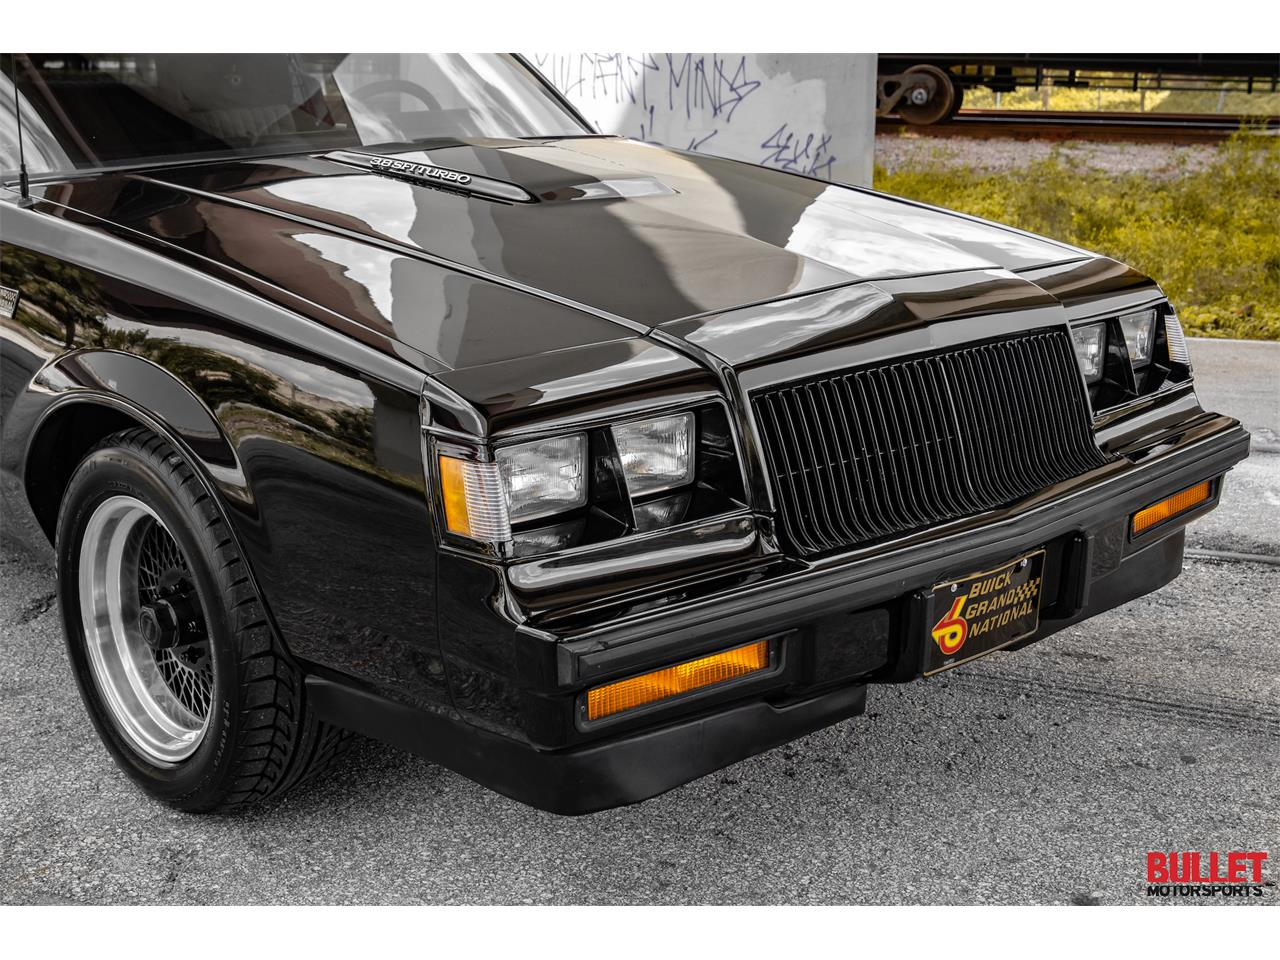 Large Picture of 1987 Buick Grand National located in Florida Offered by Bullet Motorsports Inc - PSK7